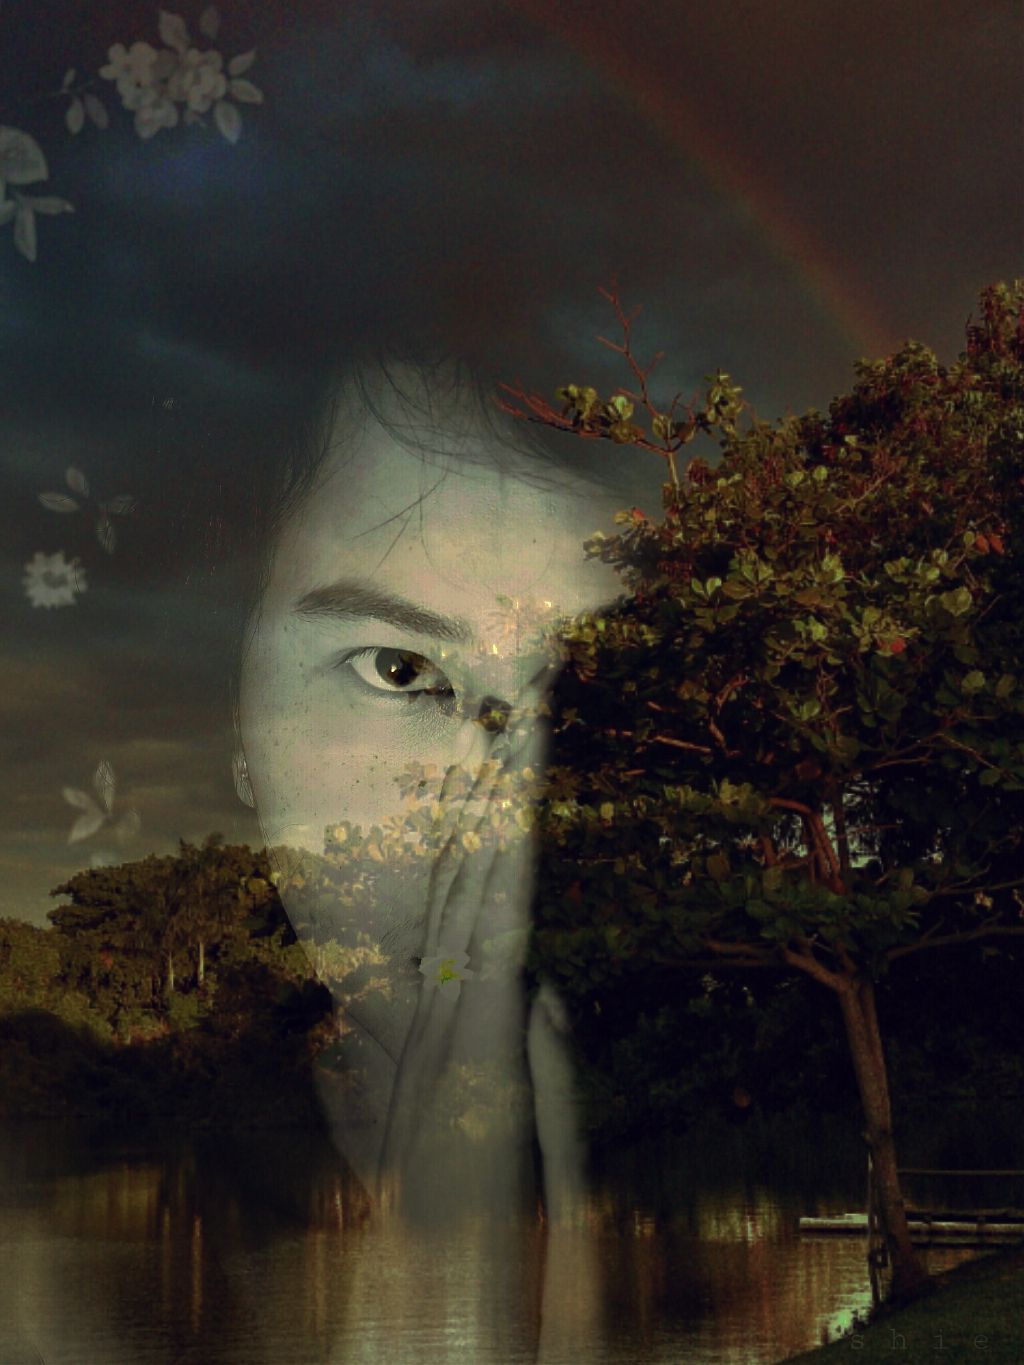 #freetoedit #collage#crossprocess  #doubleexpossure  #doubleexposure  @shie384   @morgsly